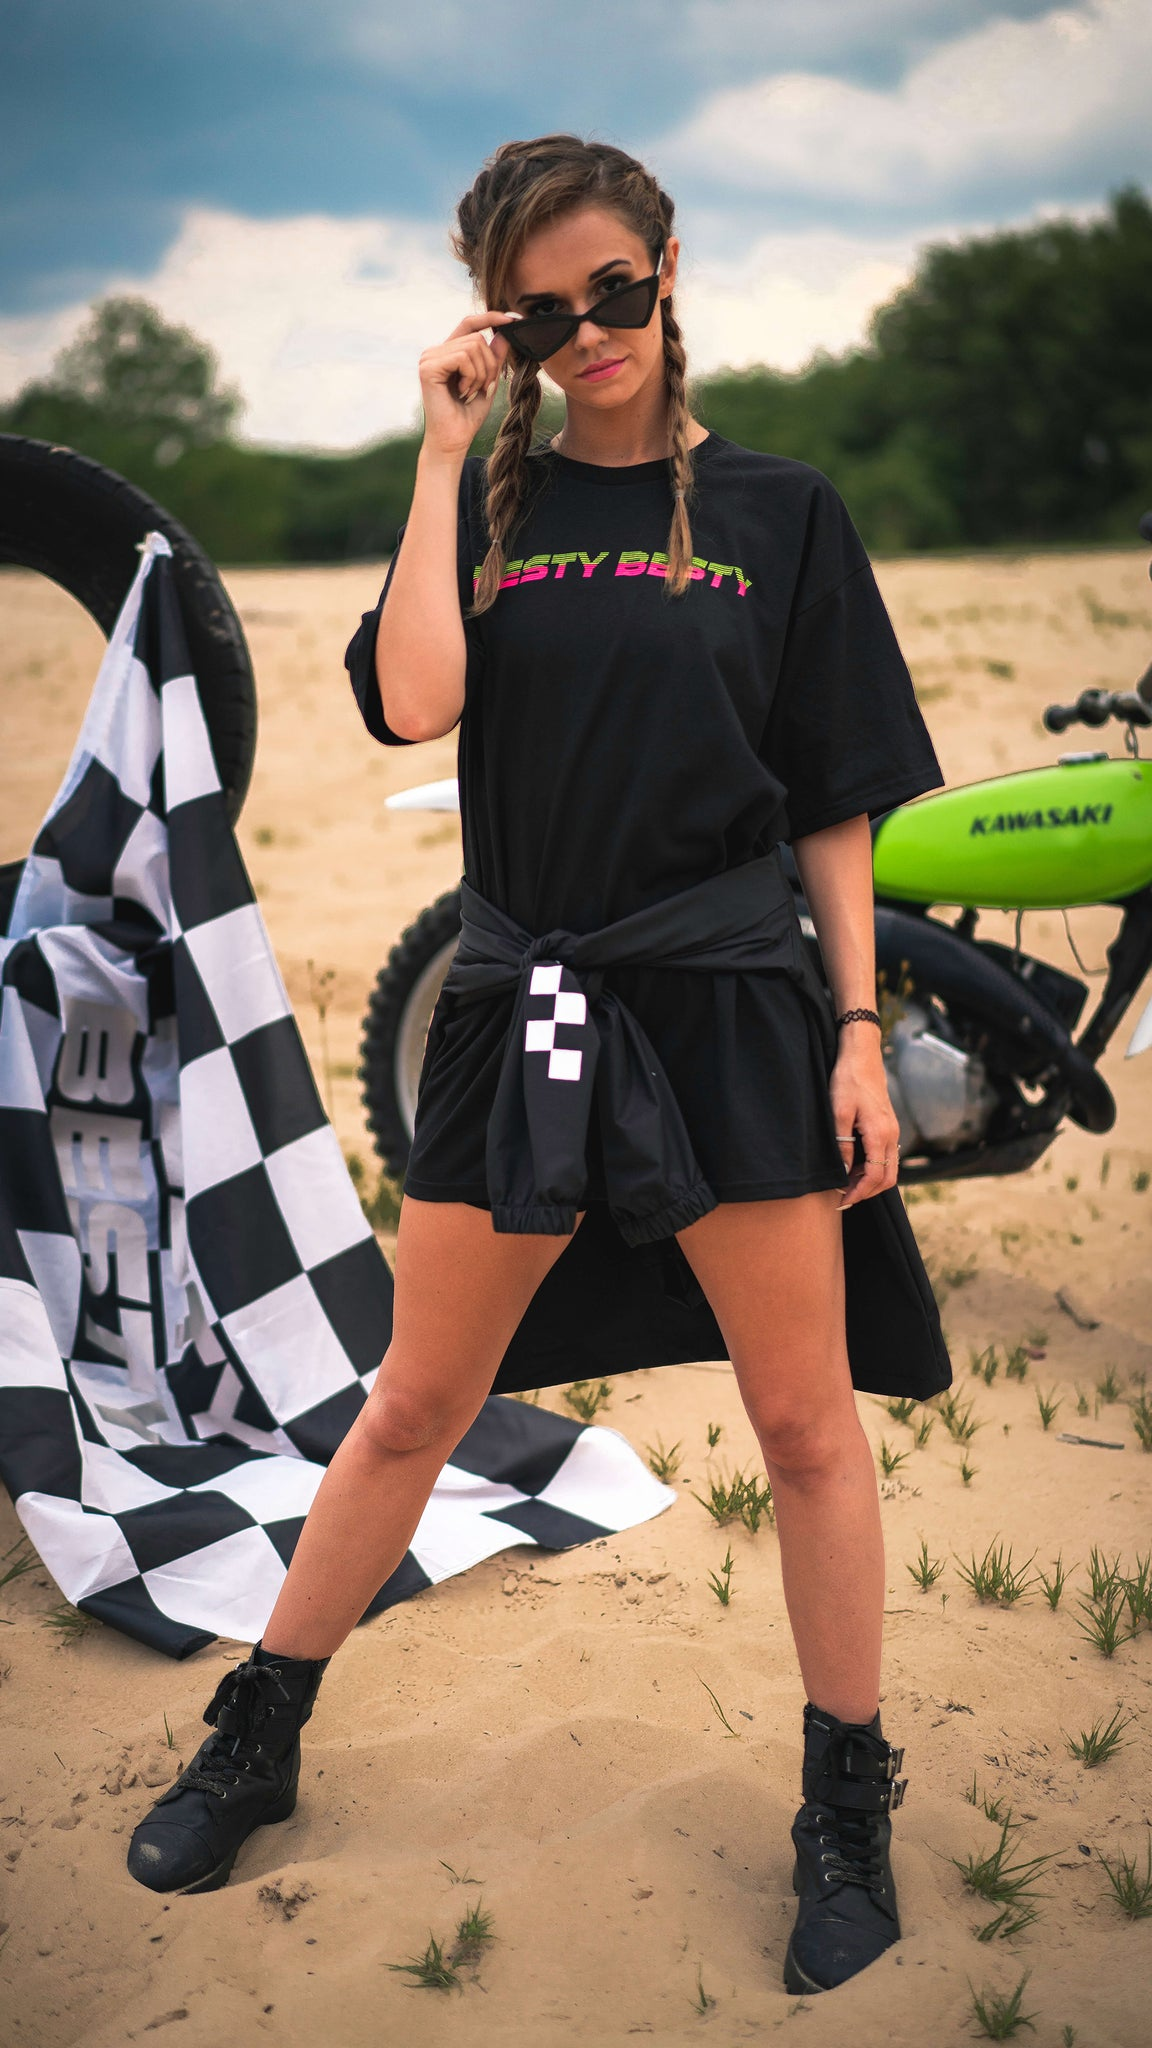 FESTY BESTY X GABBY J. DAVID | MOTOSPORT COLLECTION [001]